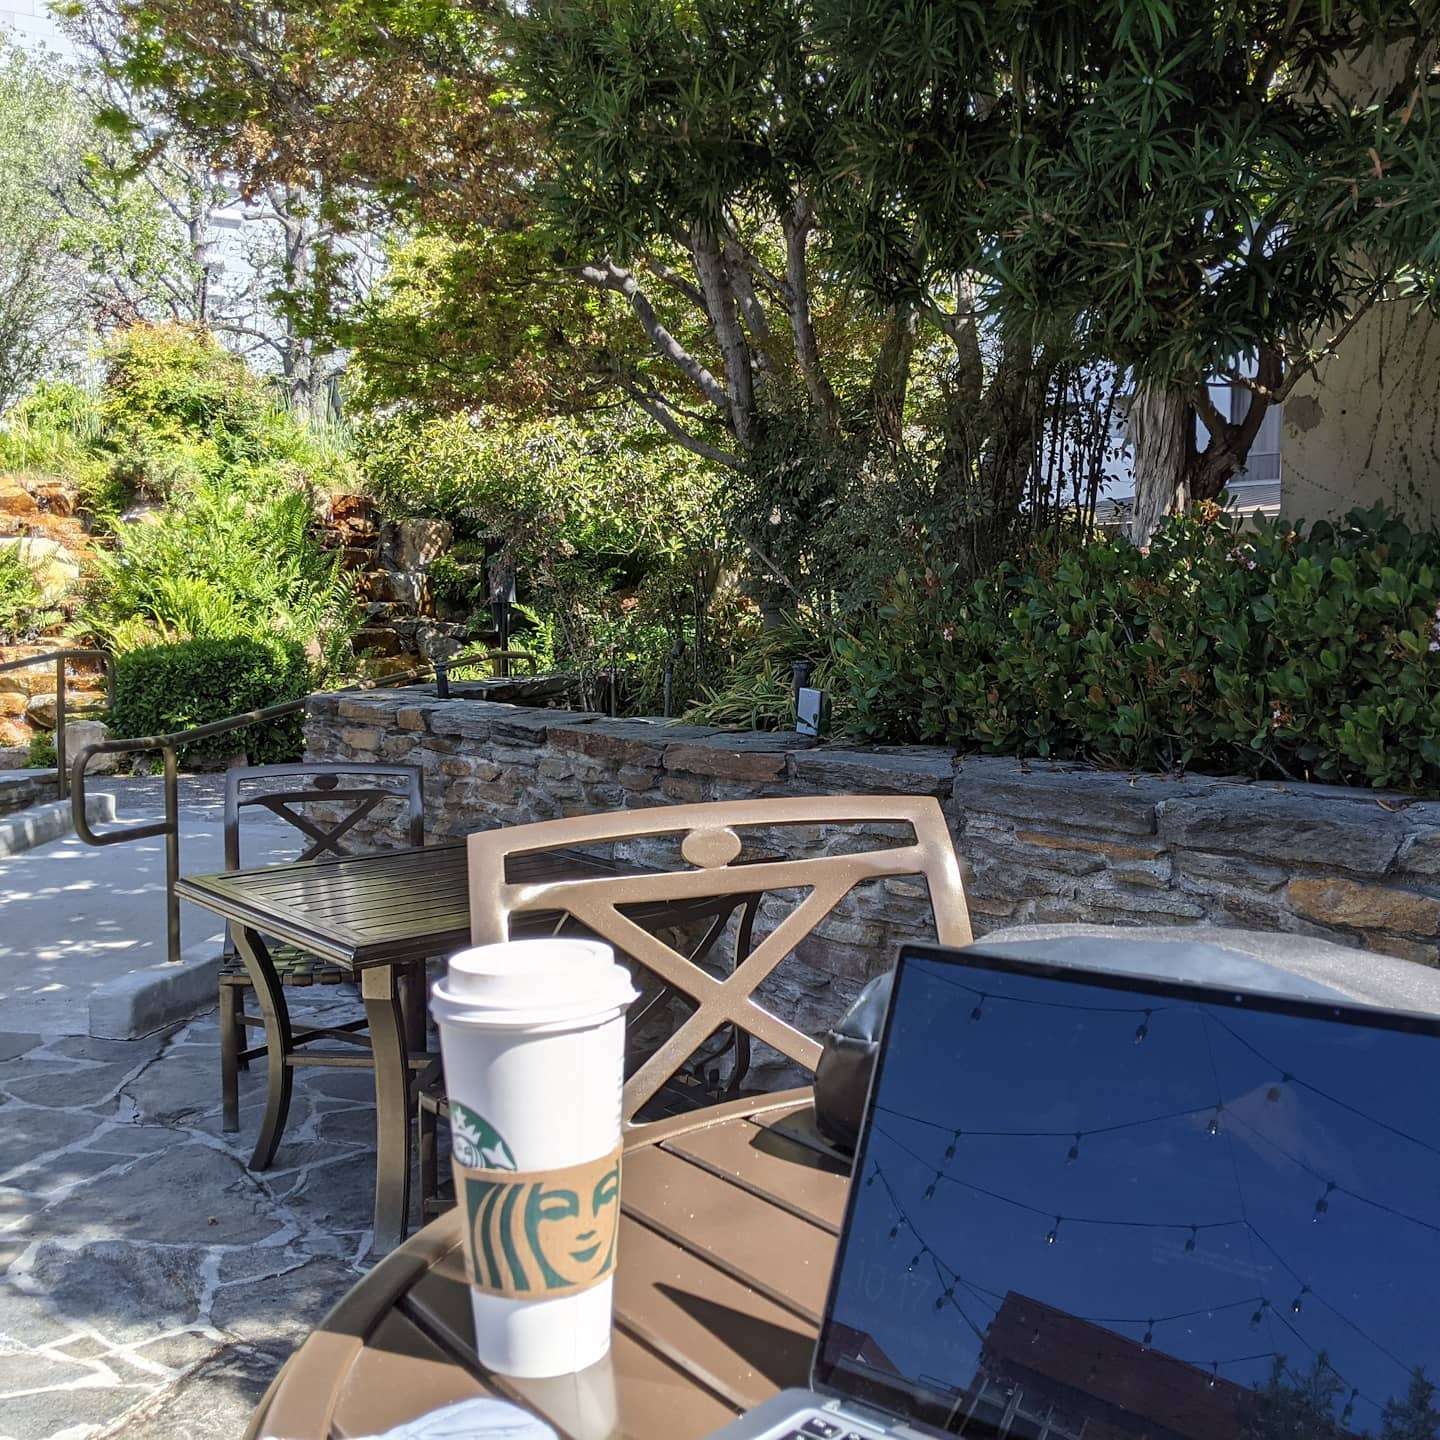 As work spaces go there are definitely worse places to sit #kyotogardens #losangeles #consultantlife